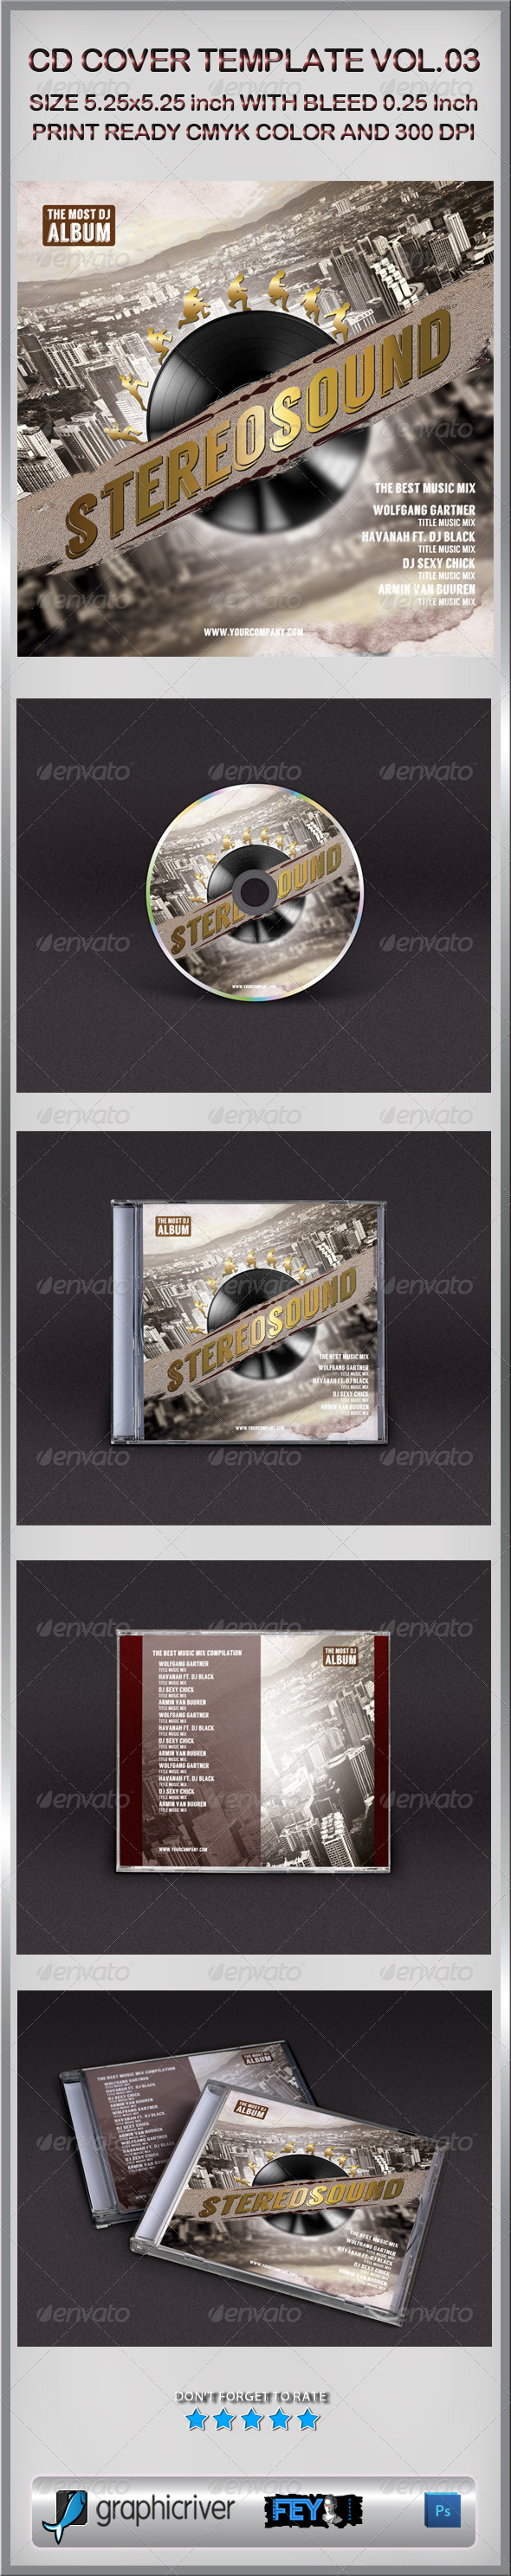 CD Cover Template Vol.03 - CD & DVD Artwork Print Templates